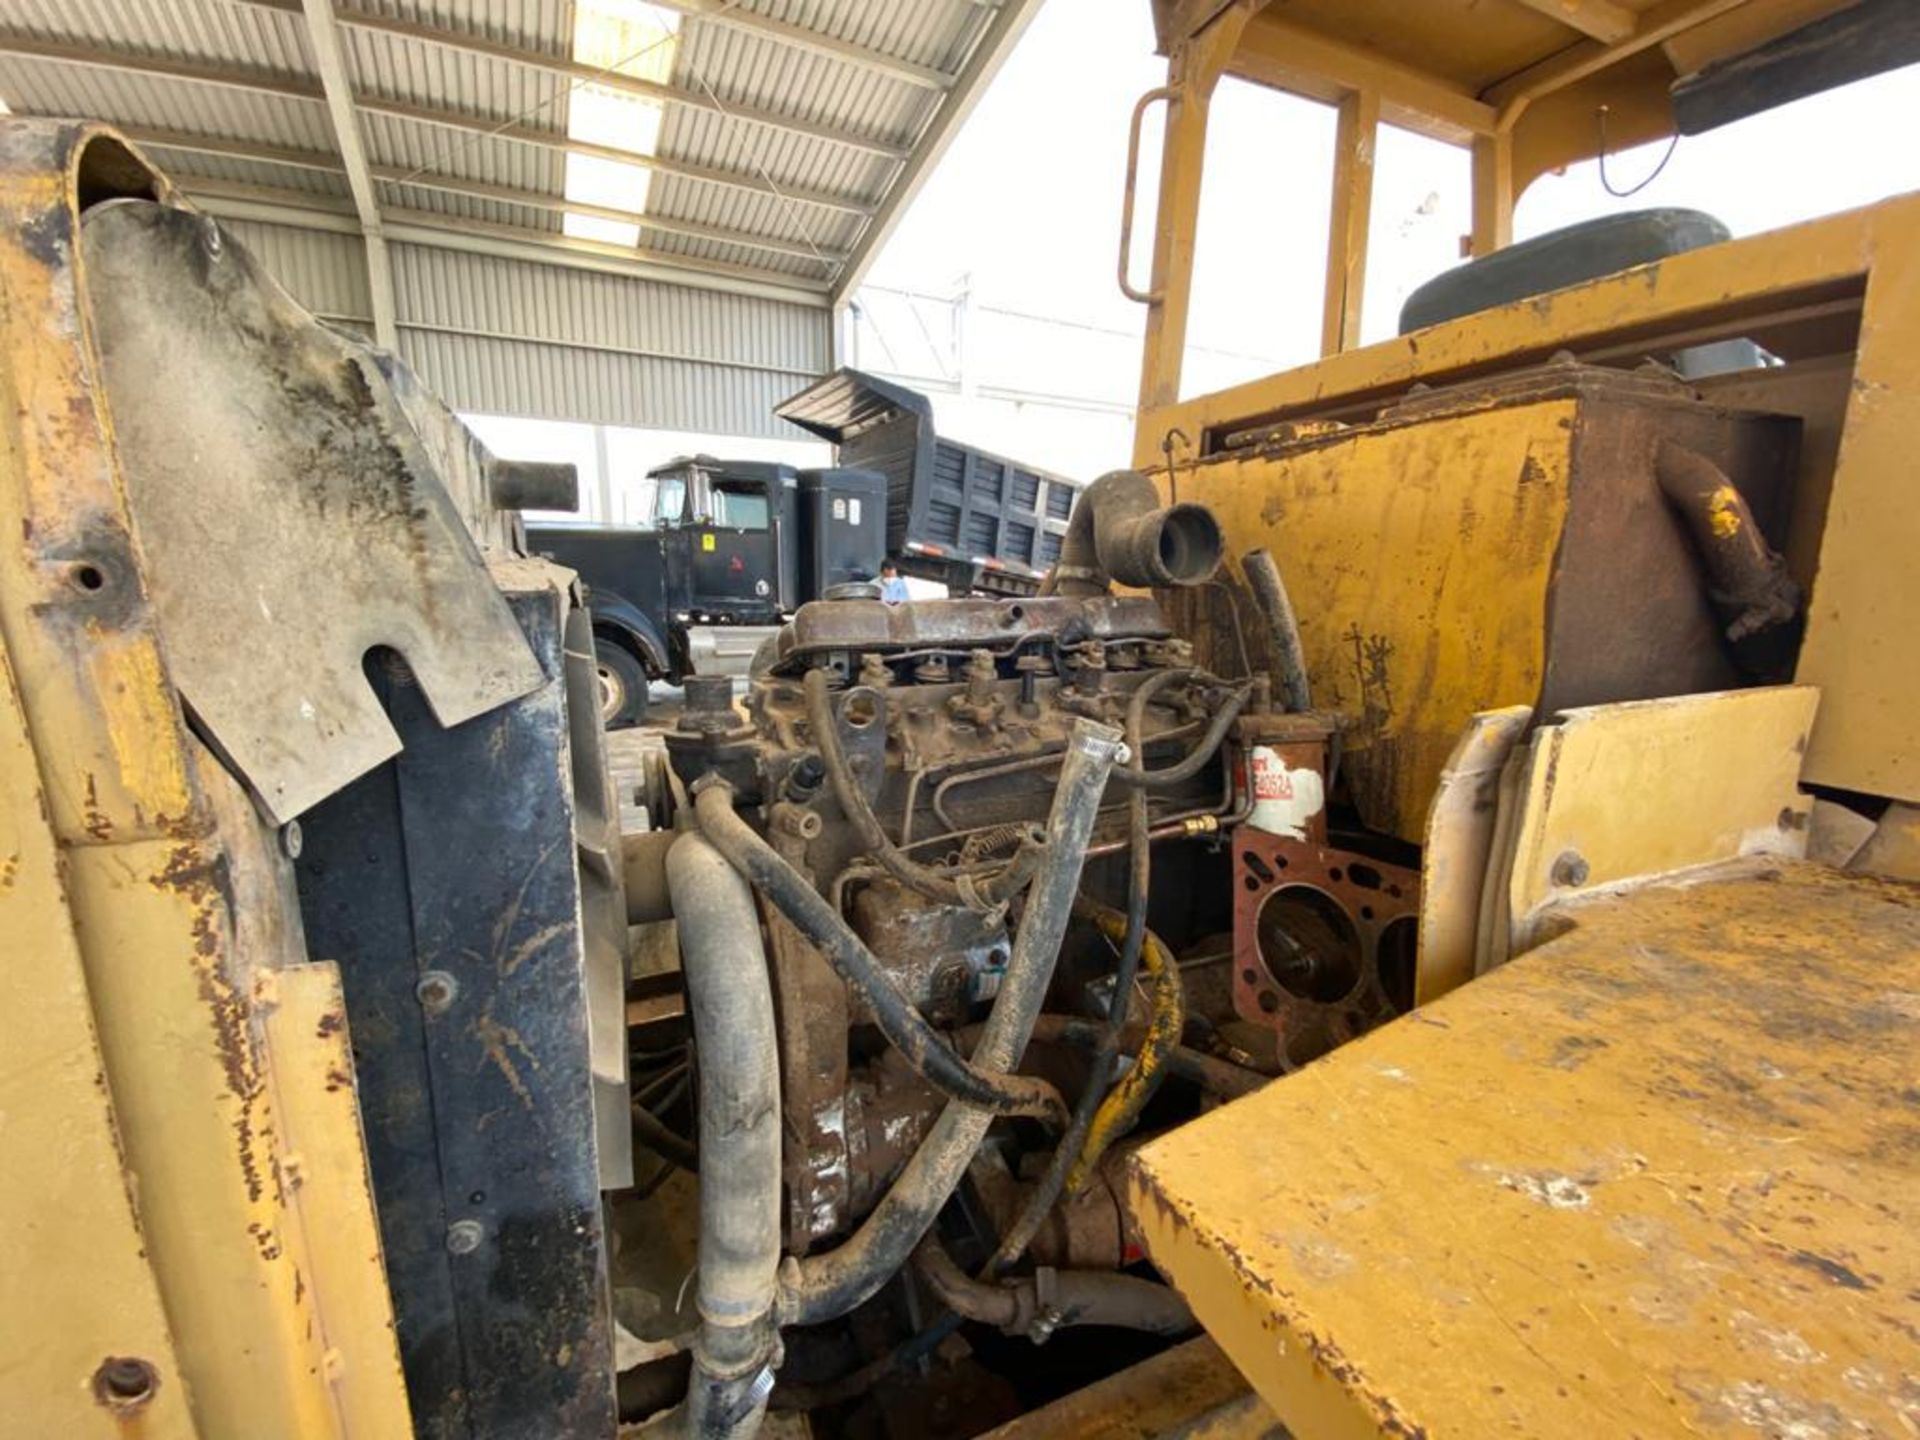 Volvo BM TYPE L 30 Michigan Front Loder, automatic transmission - Image 38 of 53